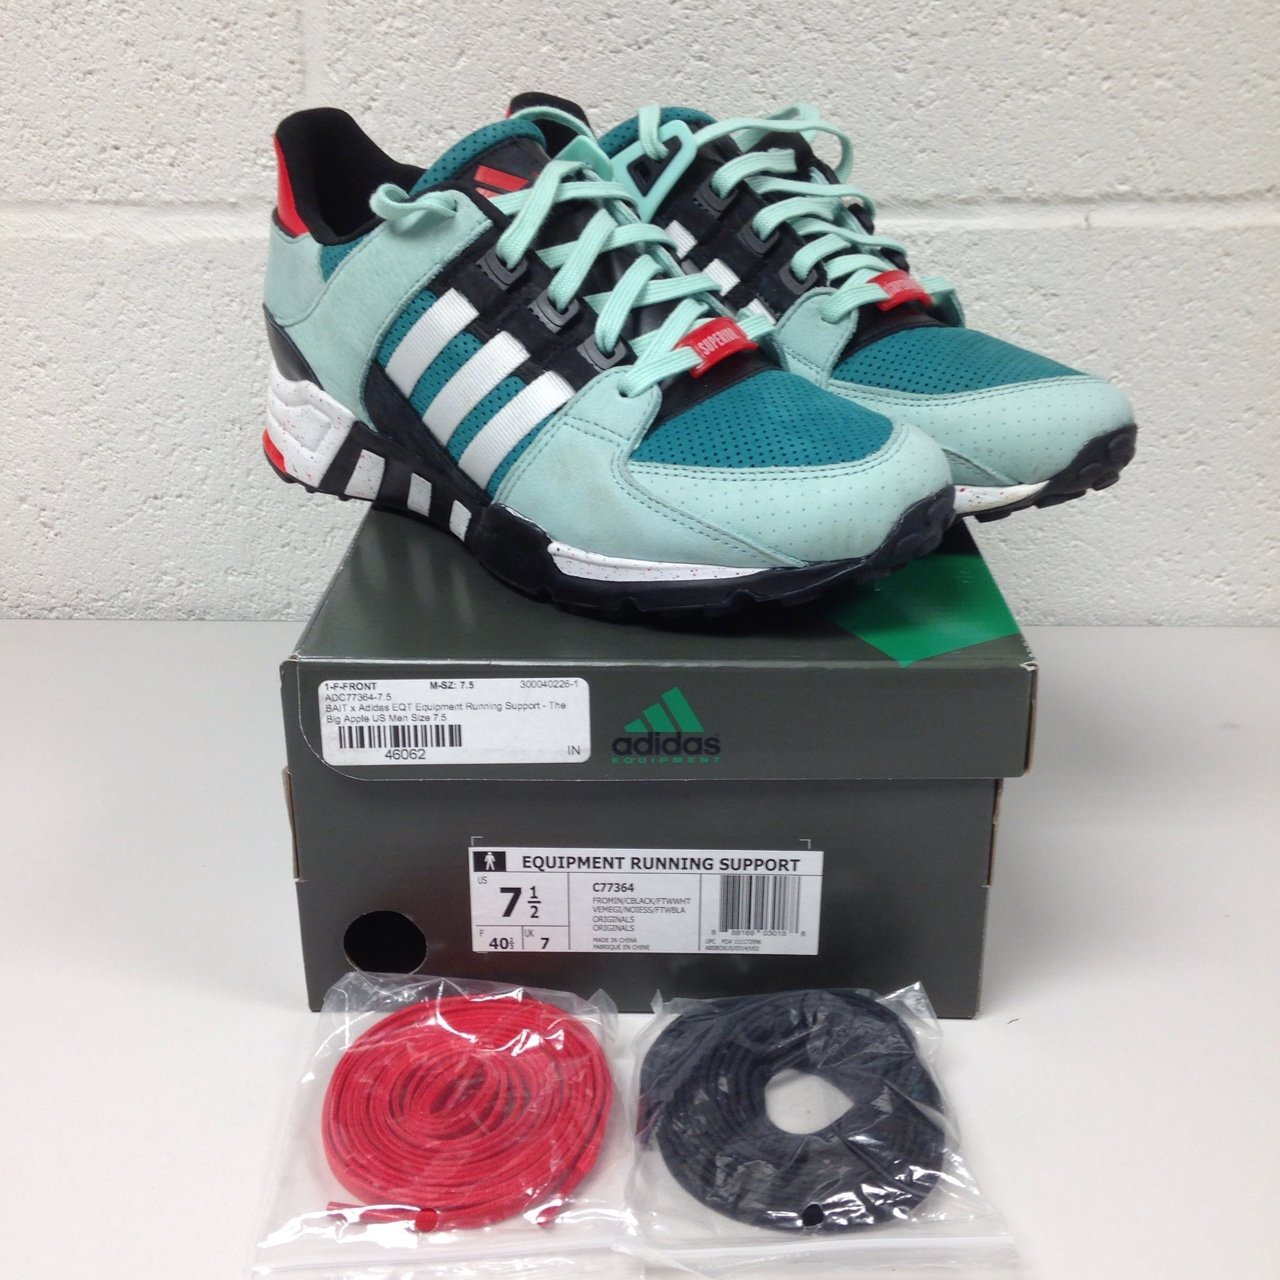 outlet store 0e0fb 7561d  drakie06. 4 years ago. Essex, UK. Adidas x BAIT EQT Running Support  Big  Apple  ...